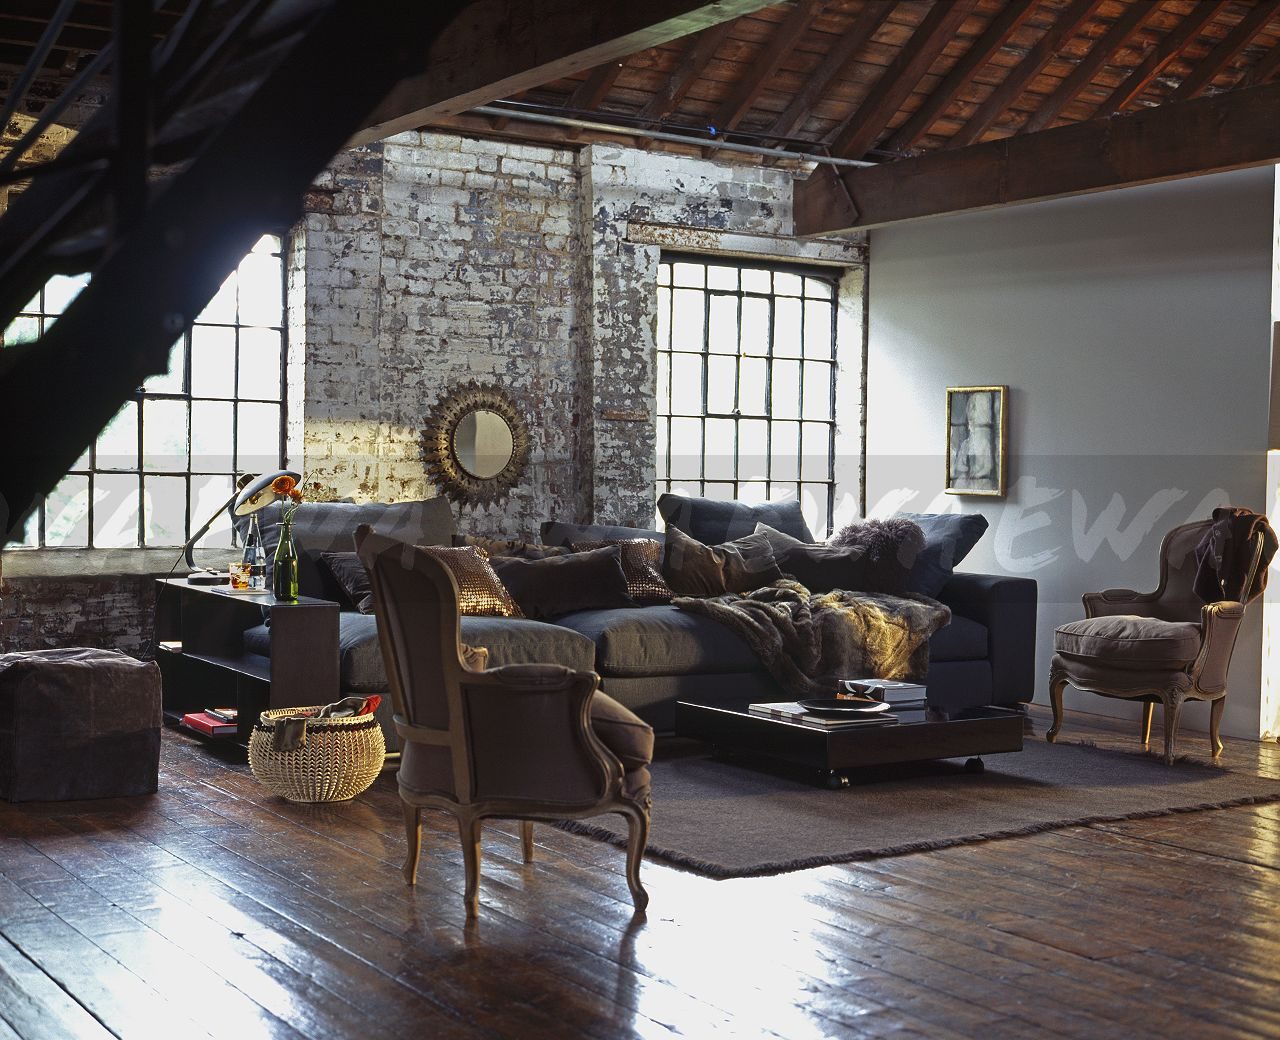 Image French Style Armchairs And Wooden Flooring In Loft